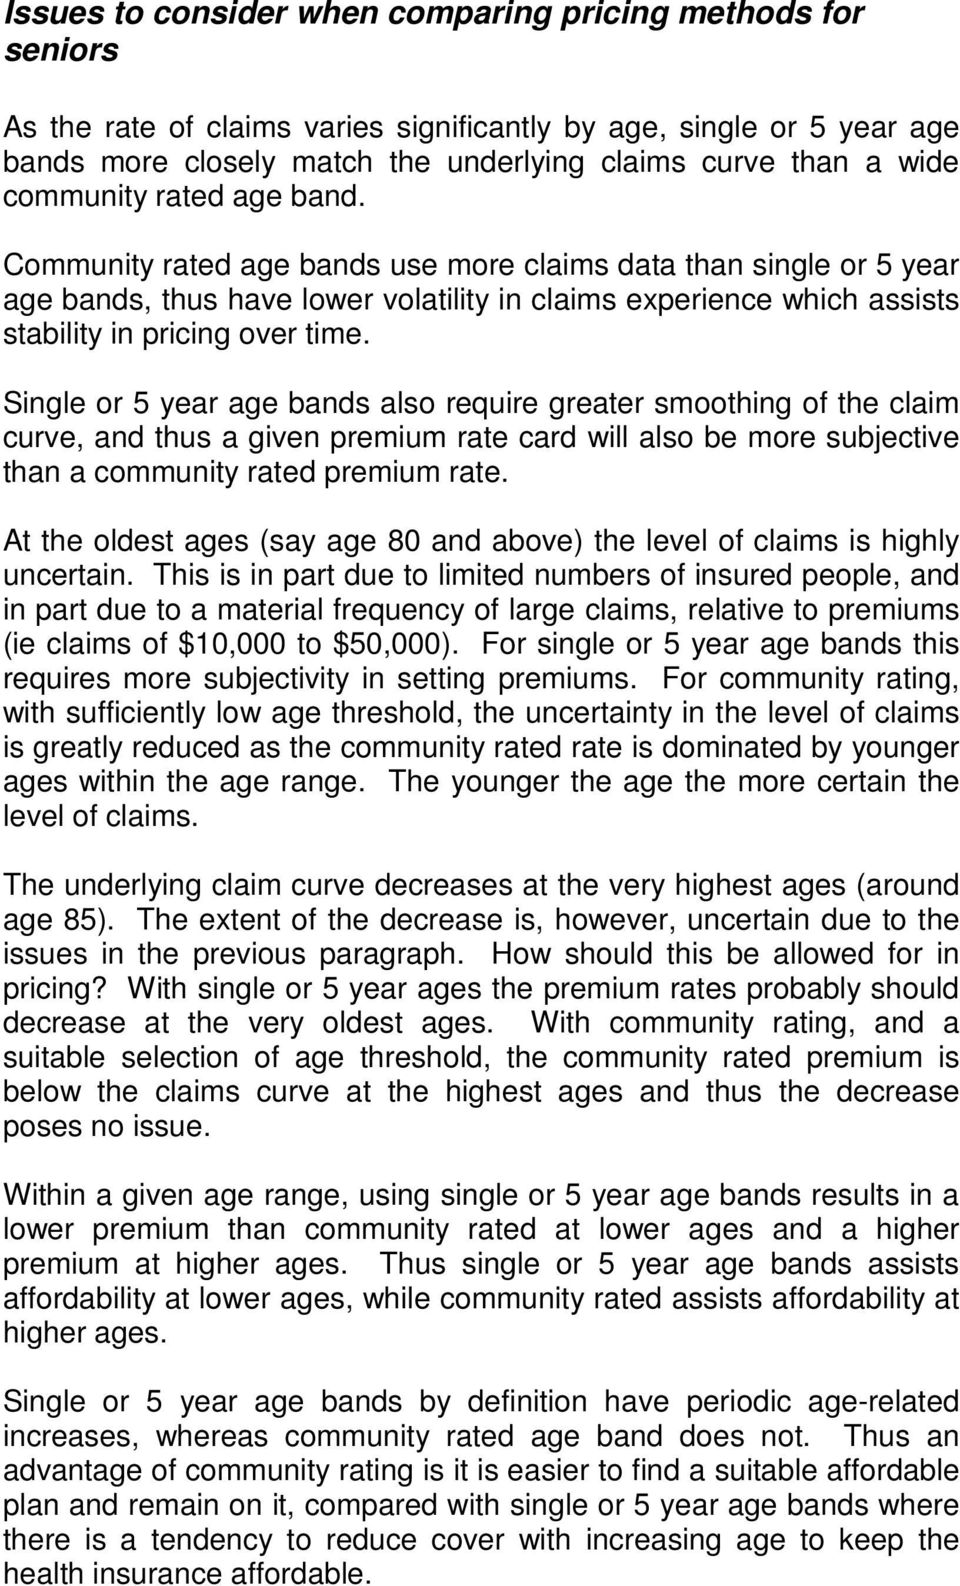 Single or 5 year age bands also require greater smoothing of the claim curve, and thus a given premium rate card will also be more subjective than a community rated premium rate.